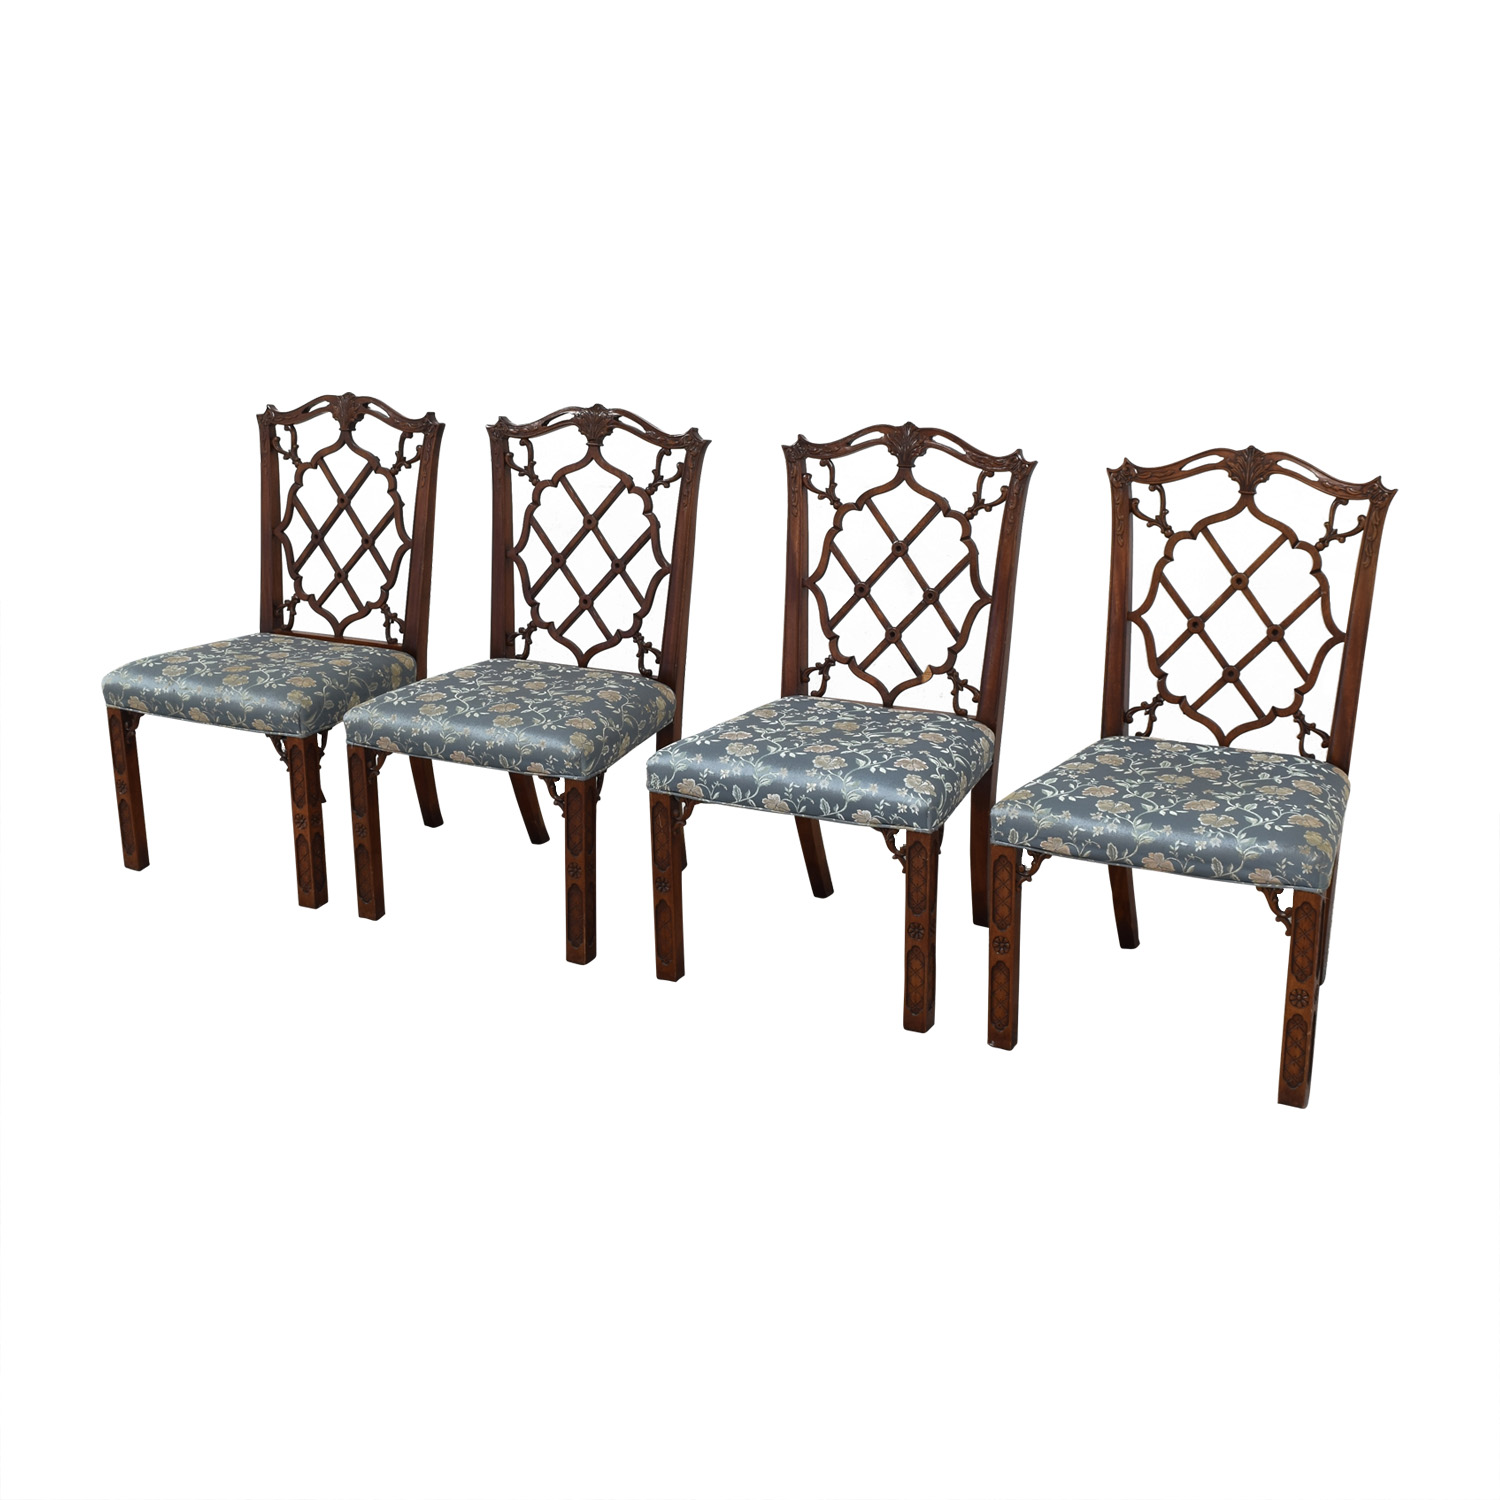 Chelsea House Chelsea House Custom Upholstered Chairs price